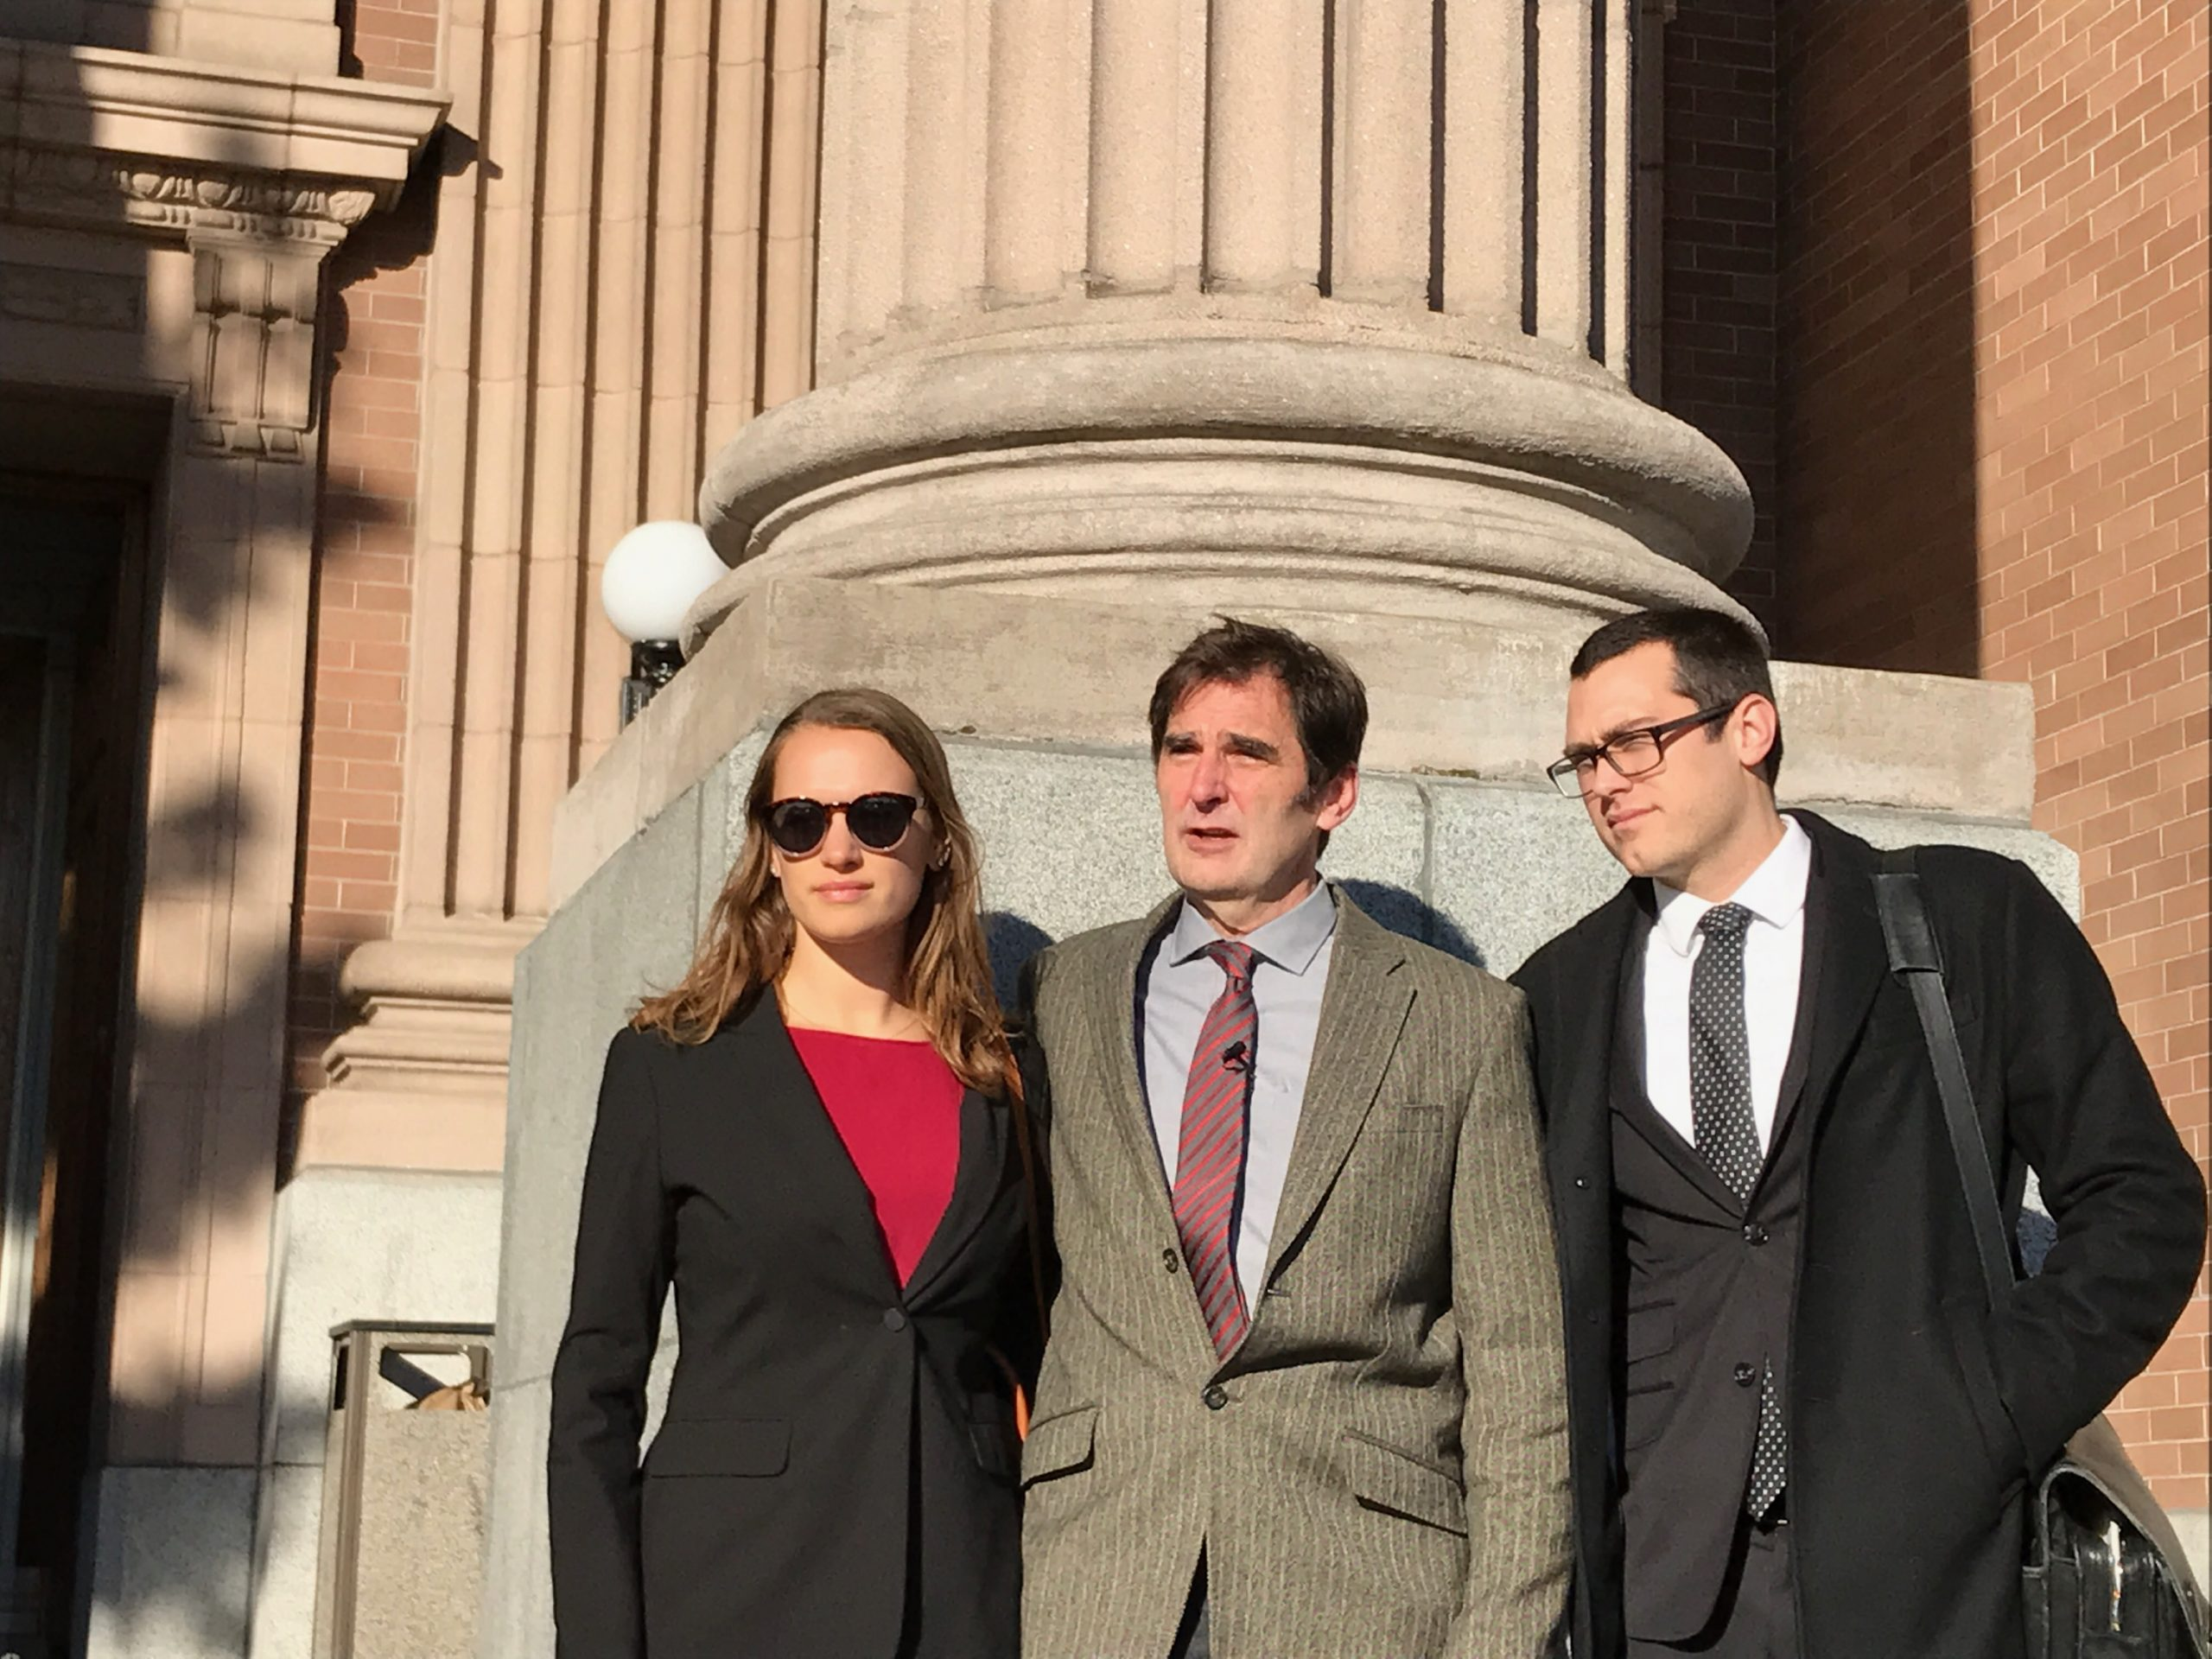 Anti-pipeline activist Ken Ward and two members of his legal team